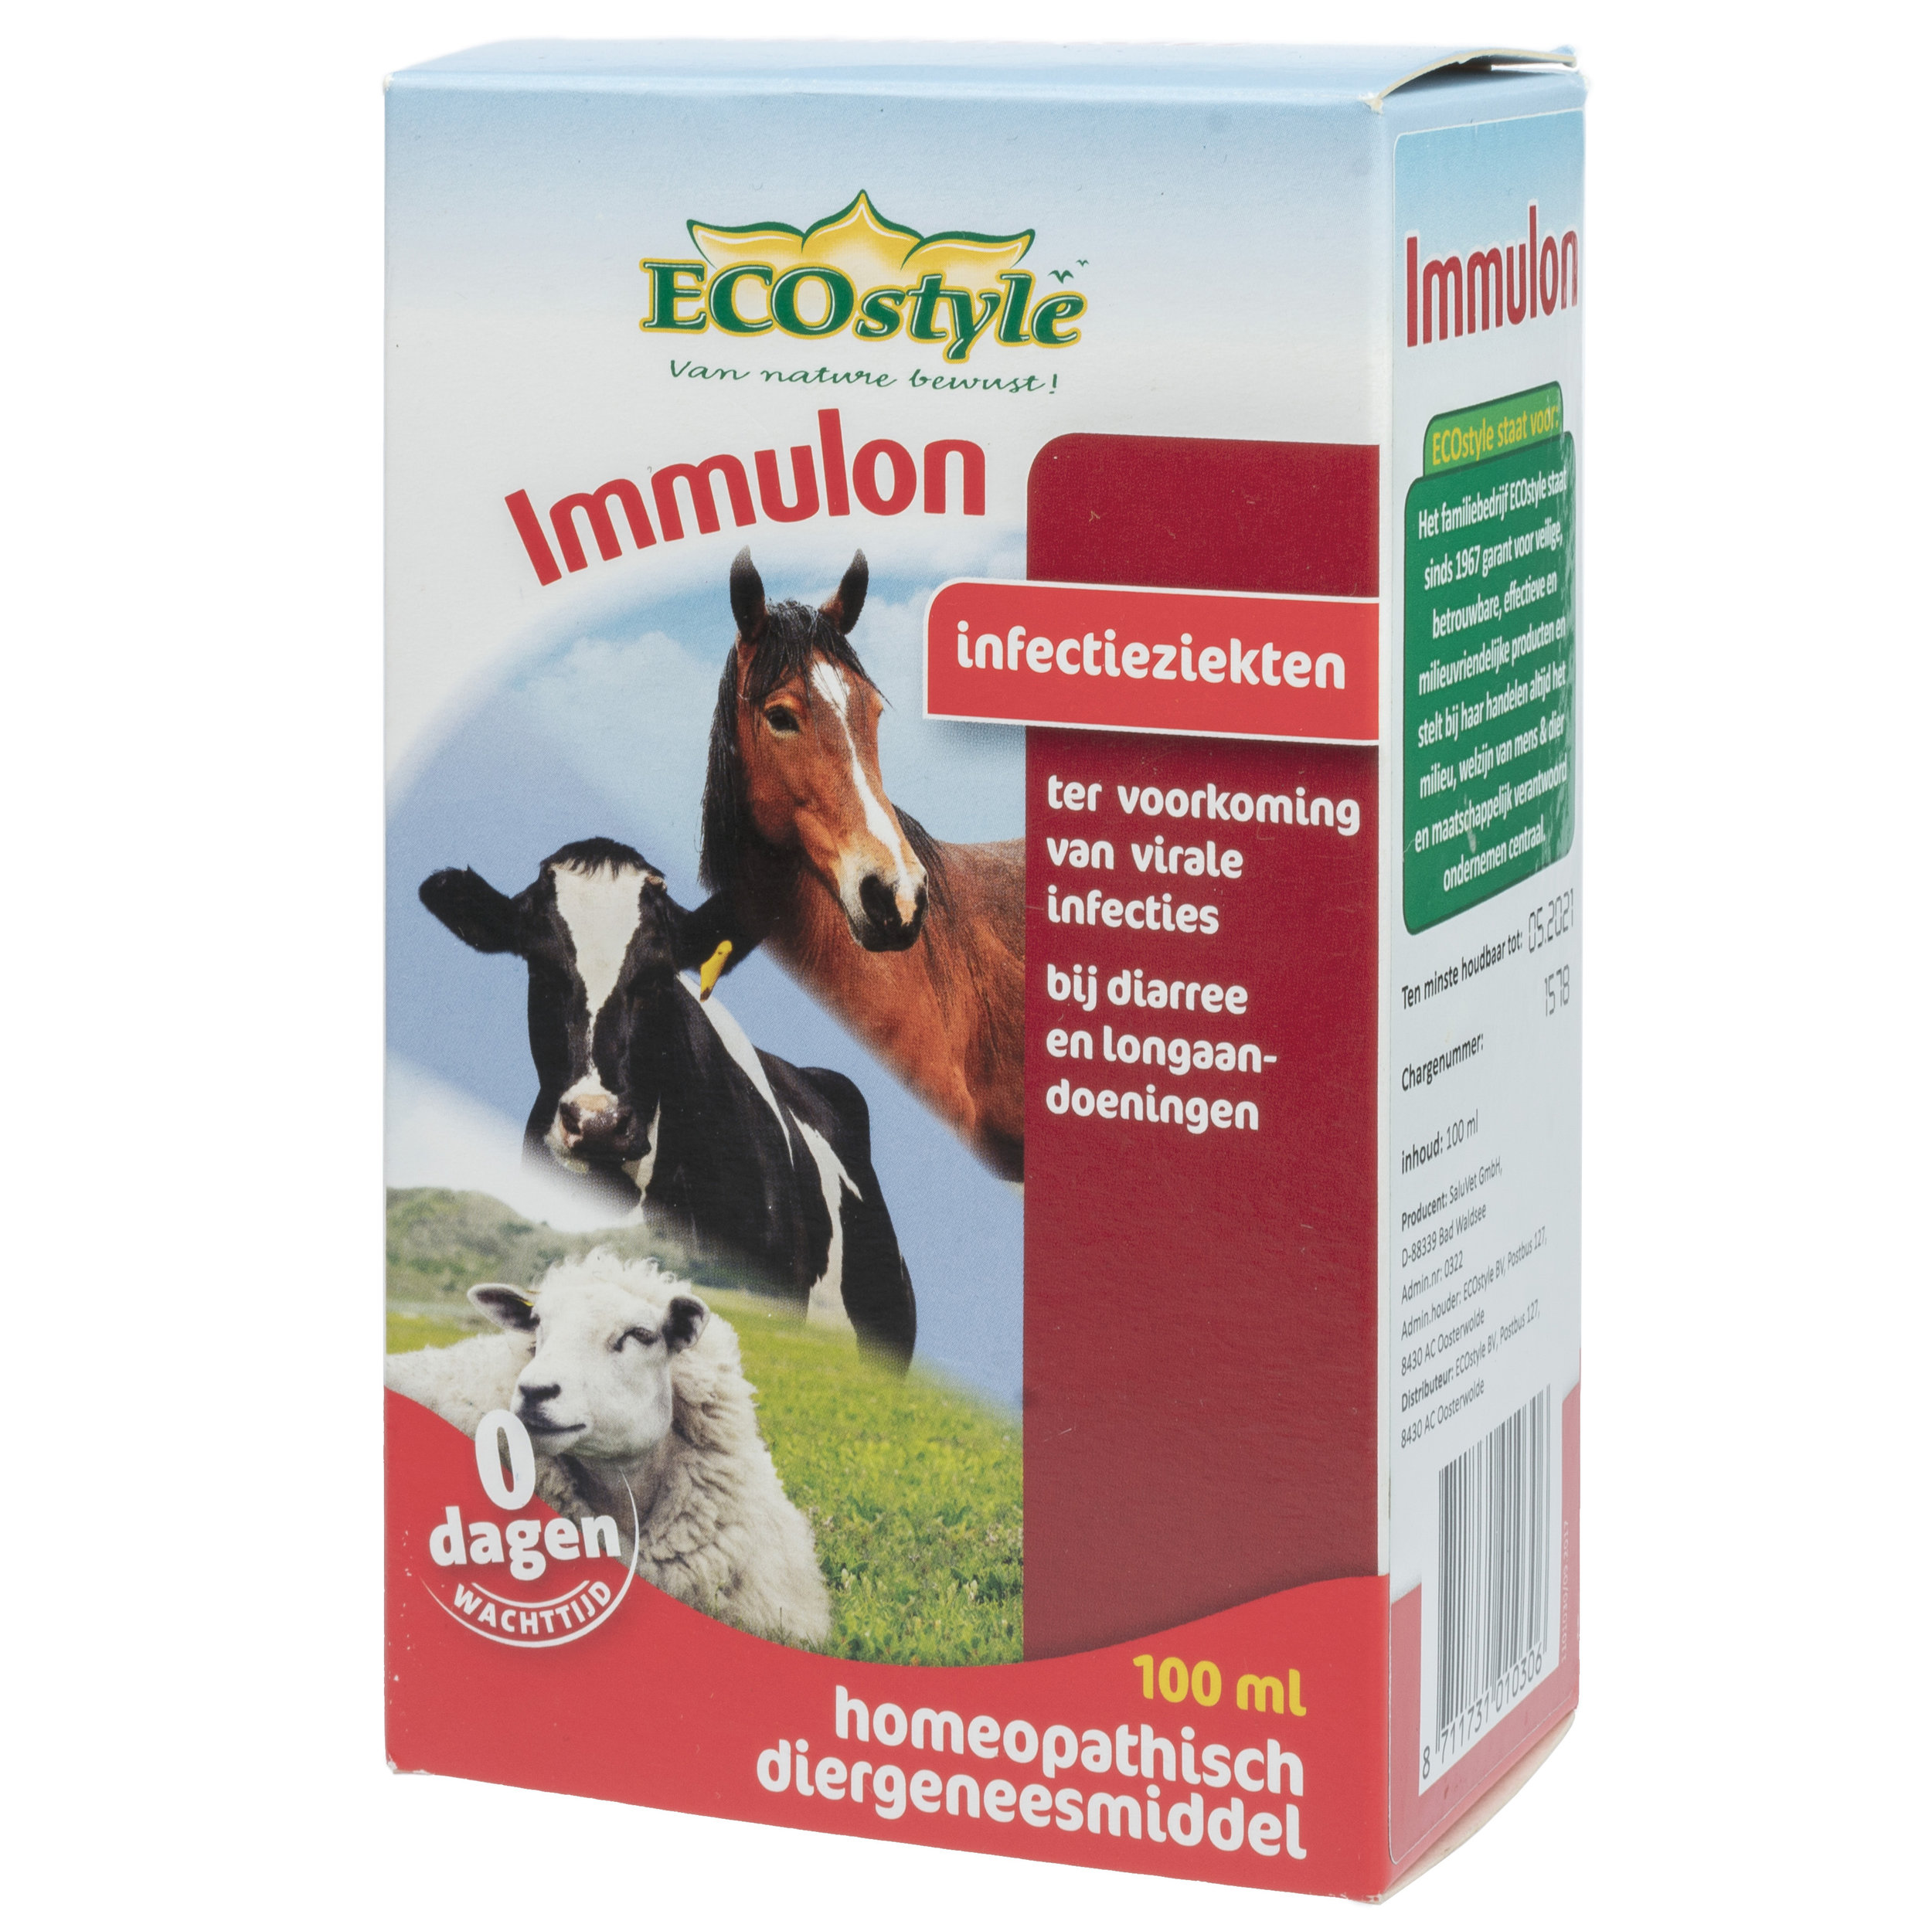 - Immulon medical productHomeopathic medicine for the prevention of viral infections.